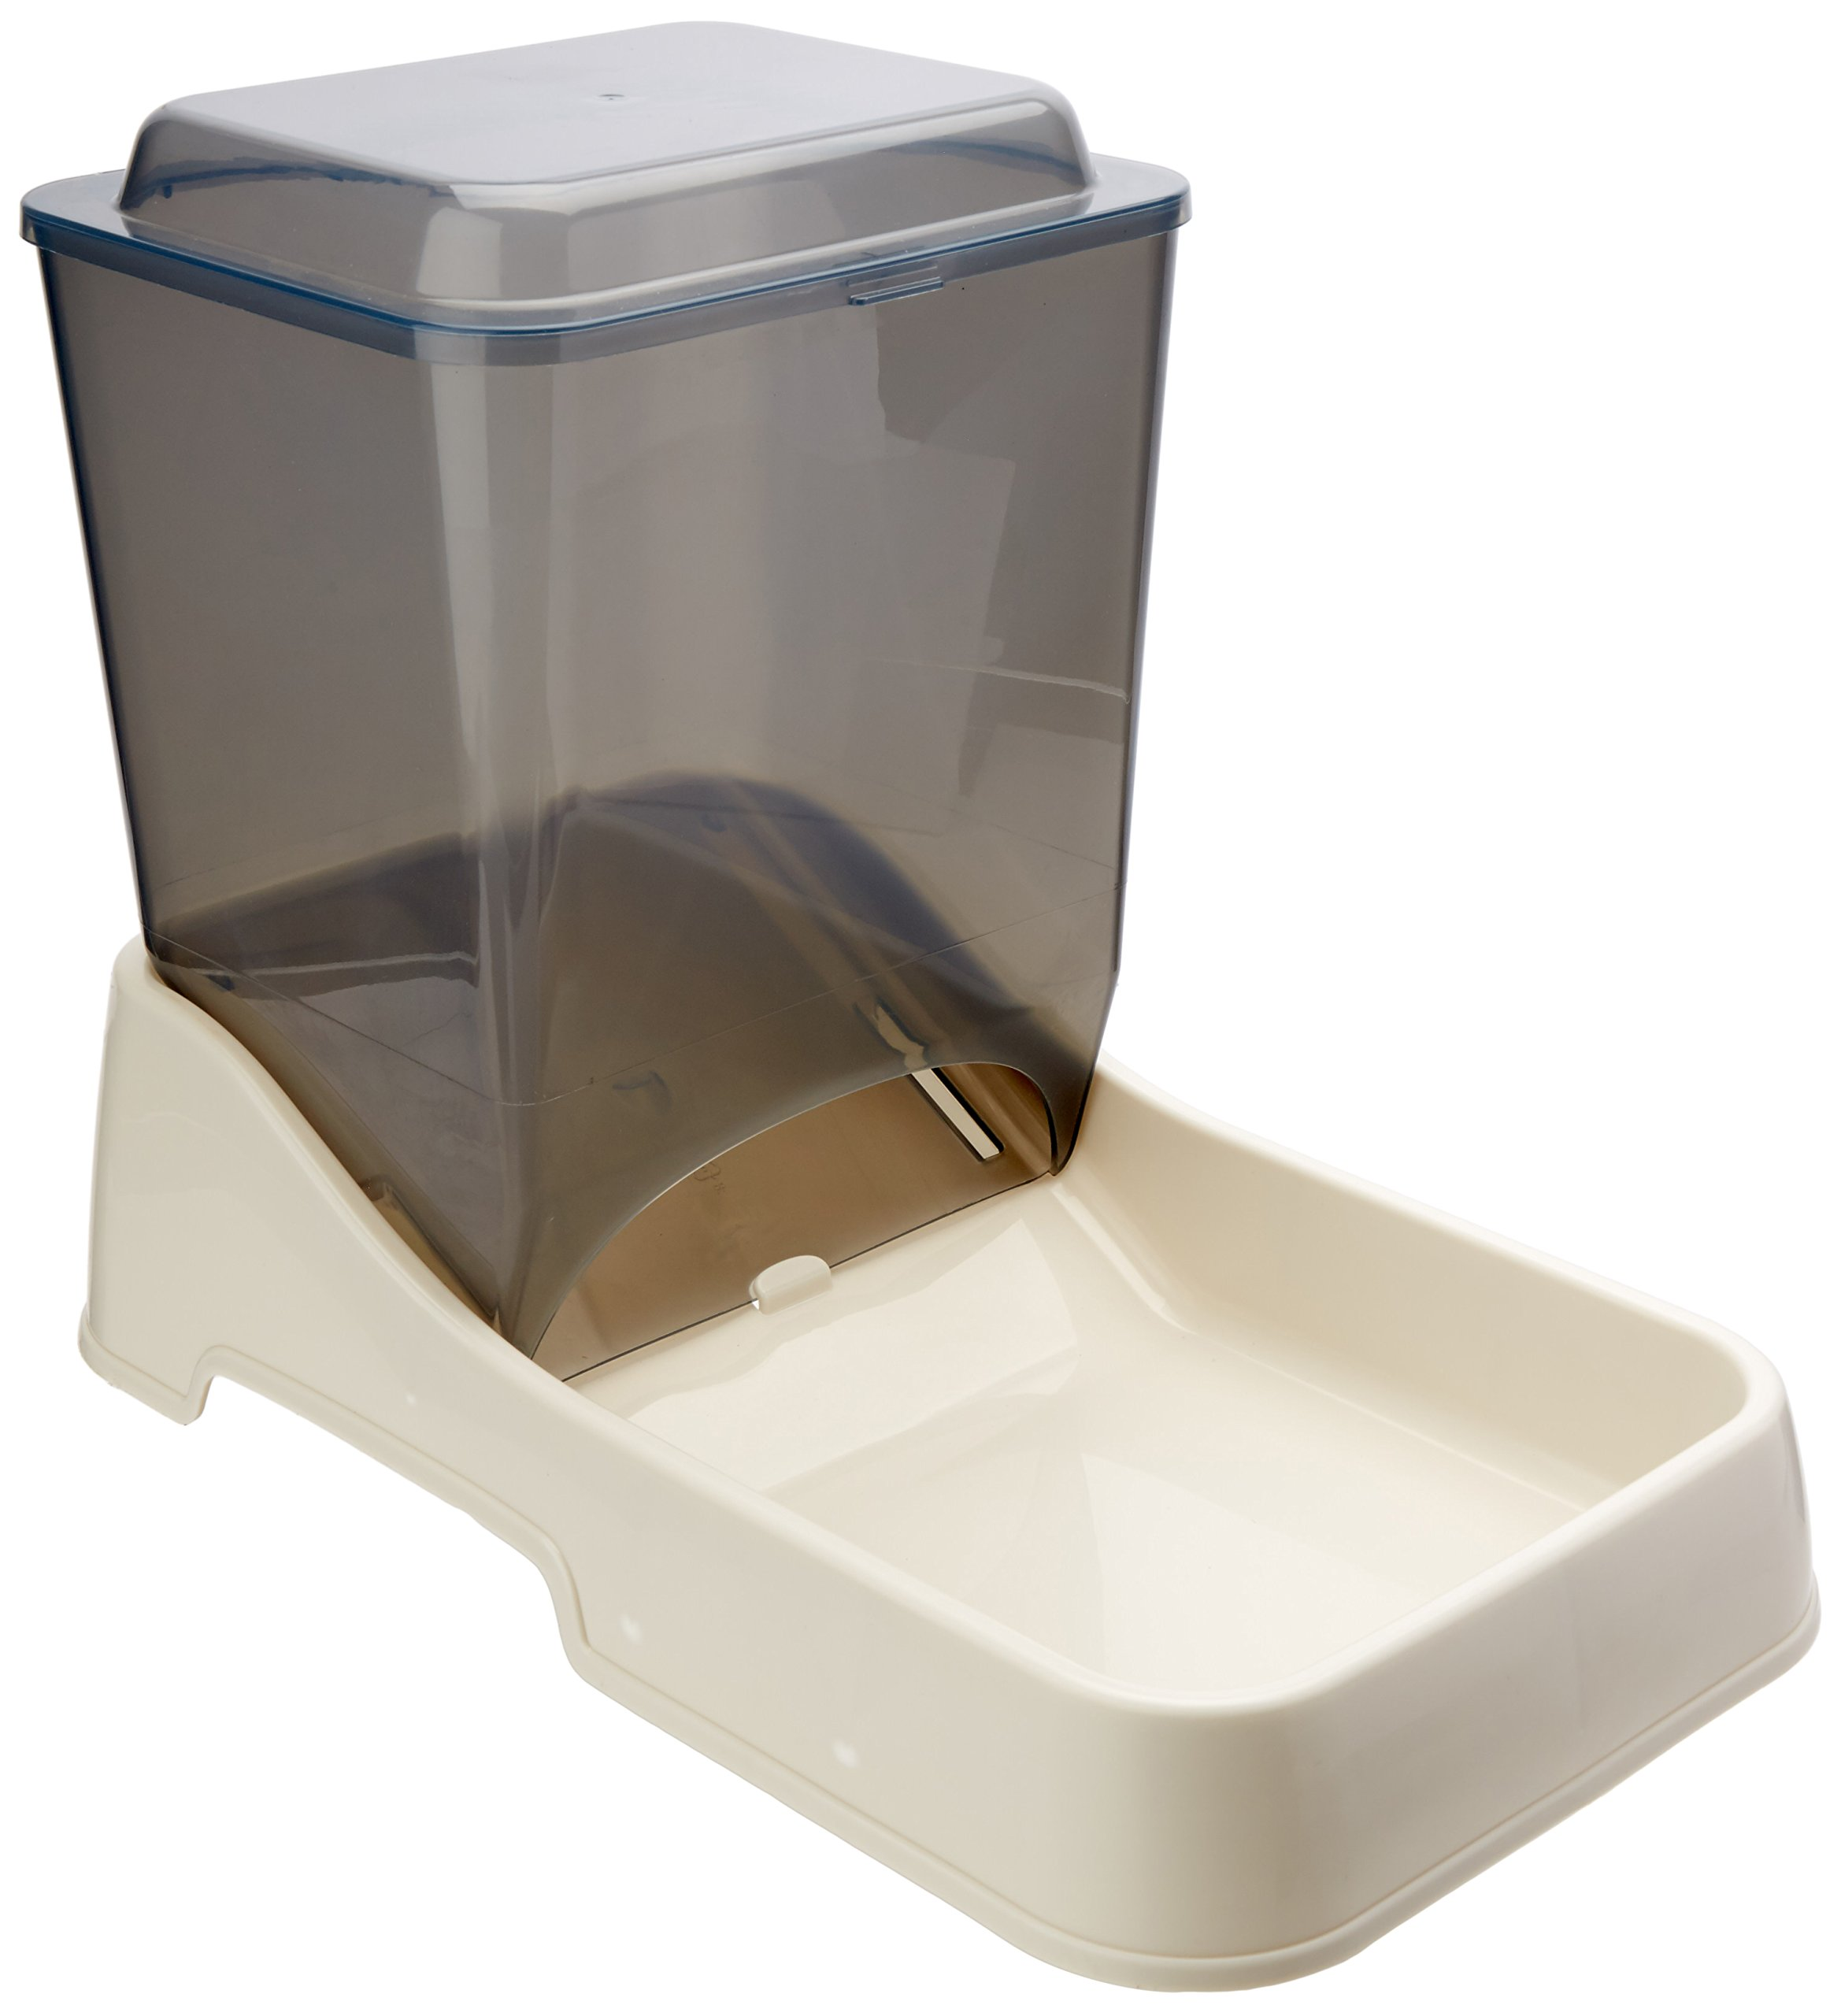 Van Ness Large Auto Feeder, 10-Pound by Van Ness (Image #1)